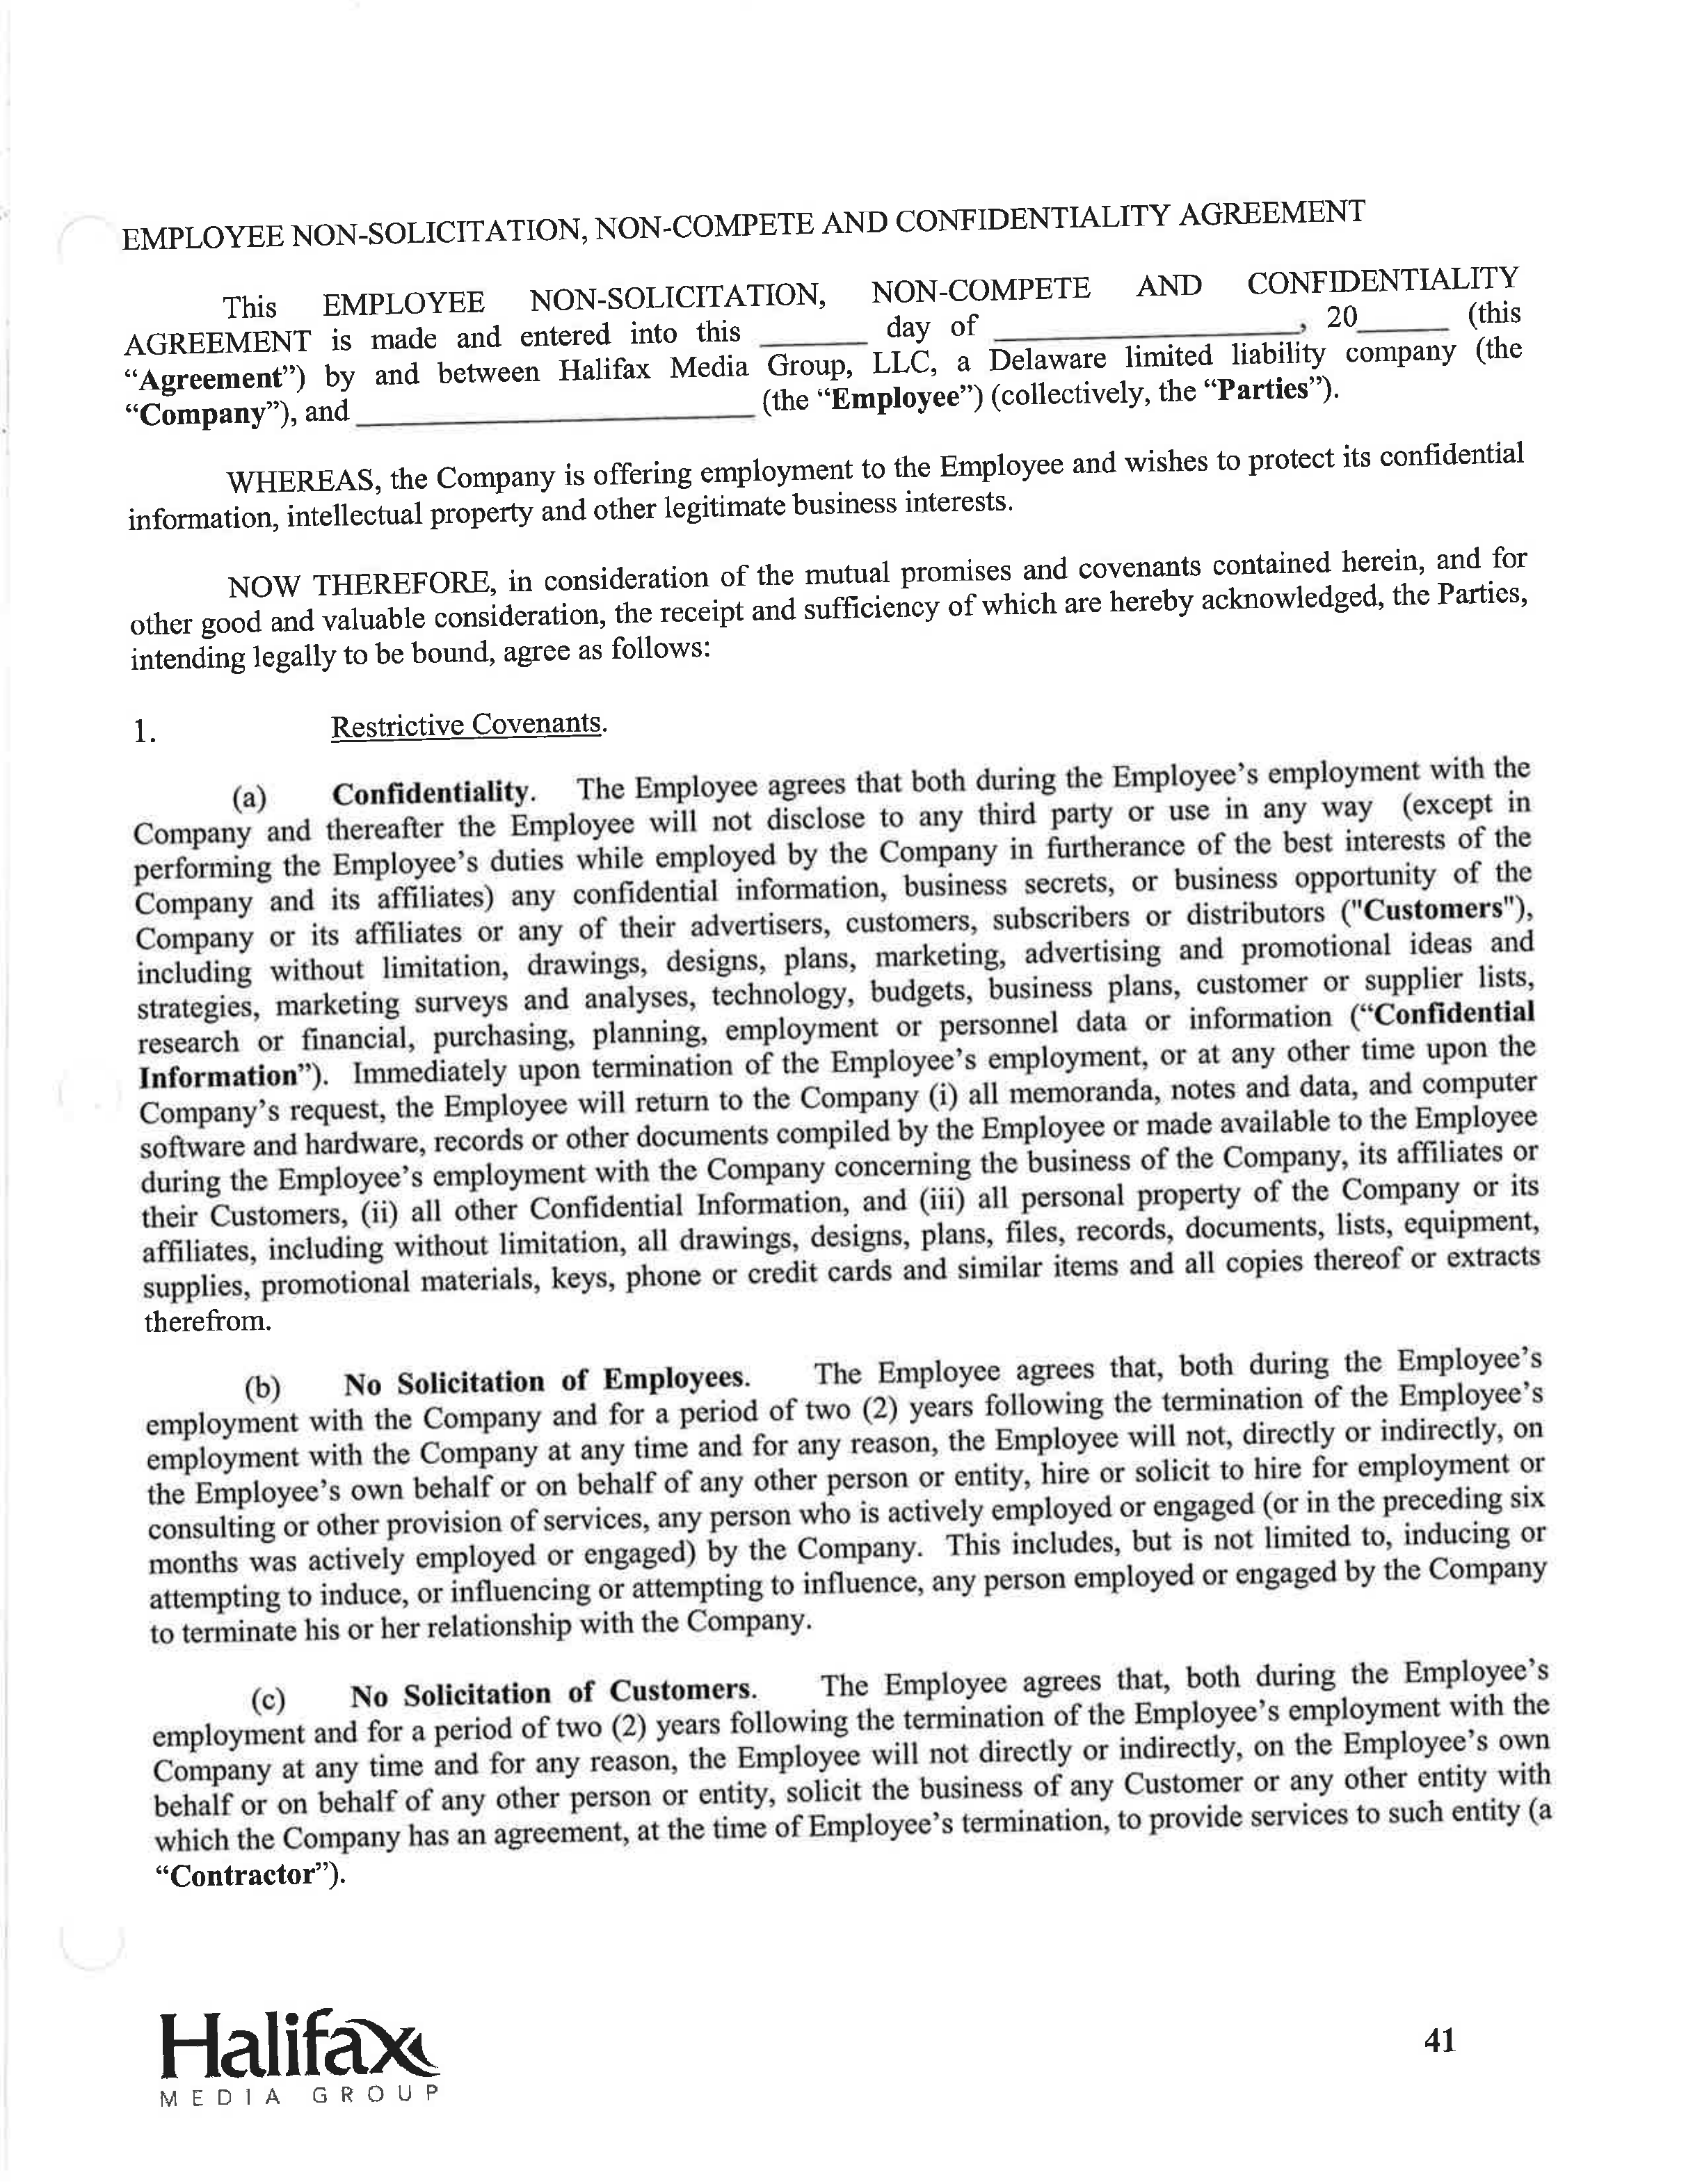 employee non solicitation non compete and confidentiality non compete and confidentiality agreement page 1 4